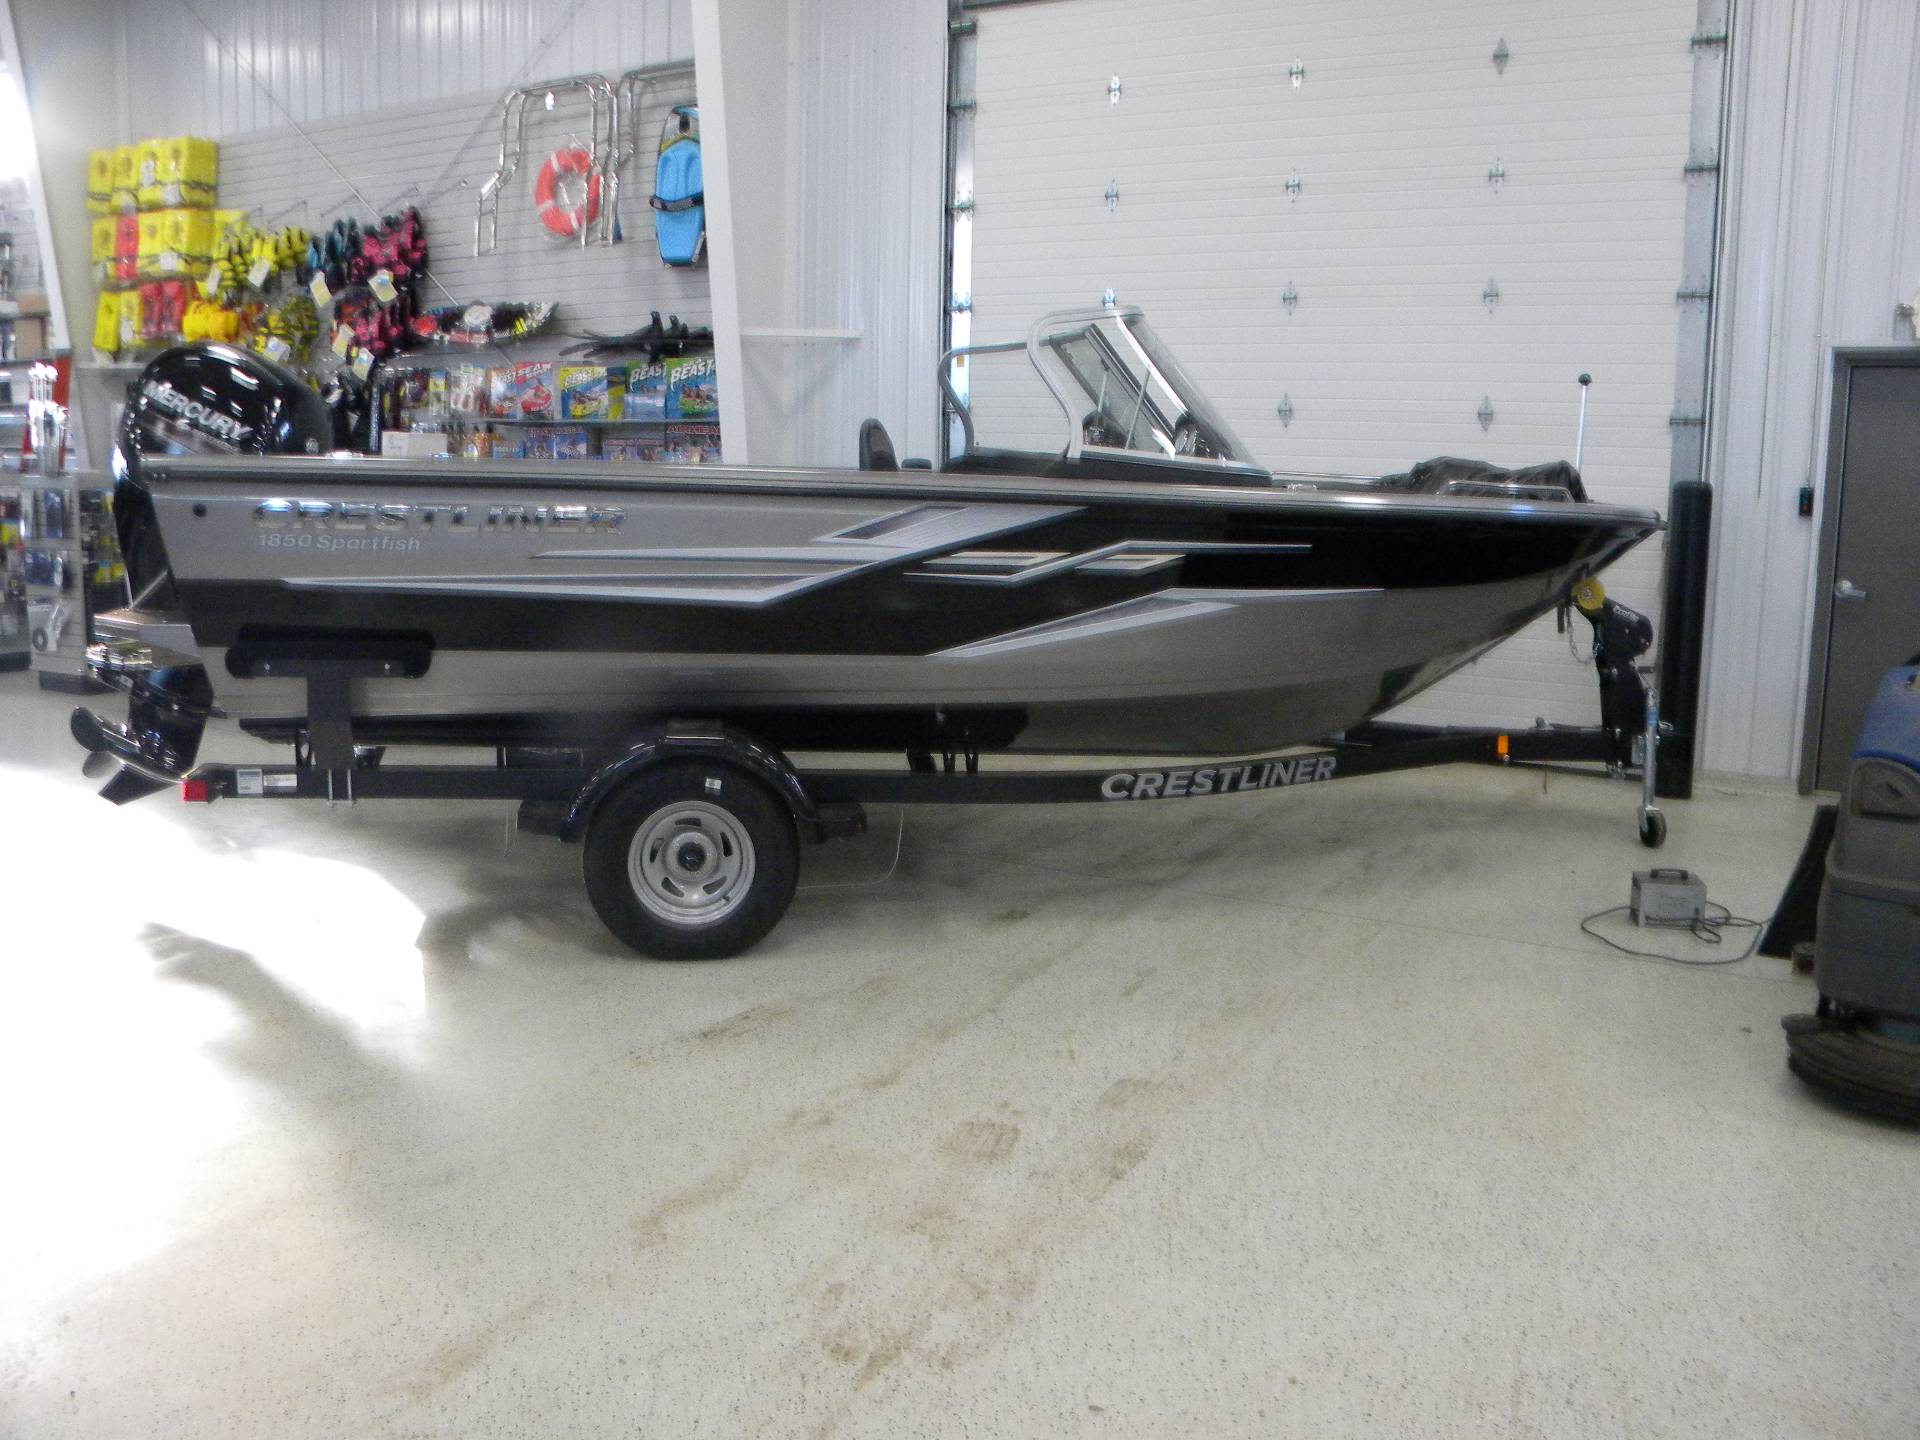 2019 Crestliner 1850 Sportfish Outboard in Kaukauna, Wisconsin - Photo 1